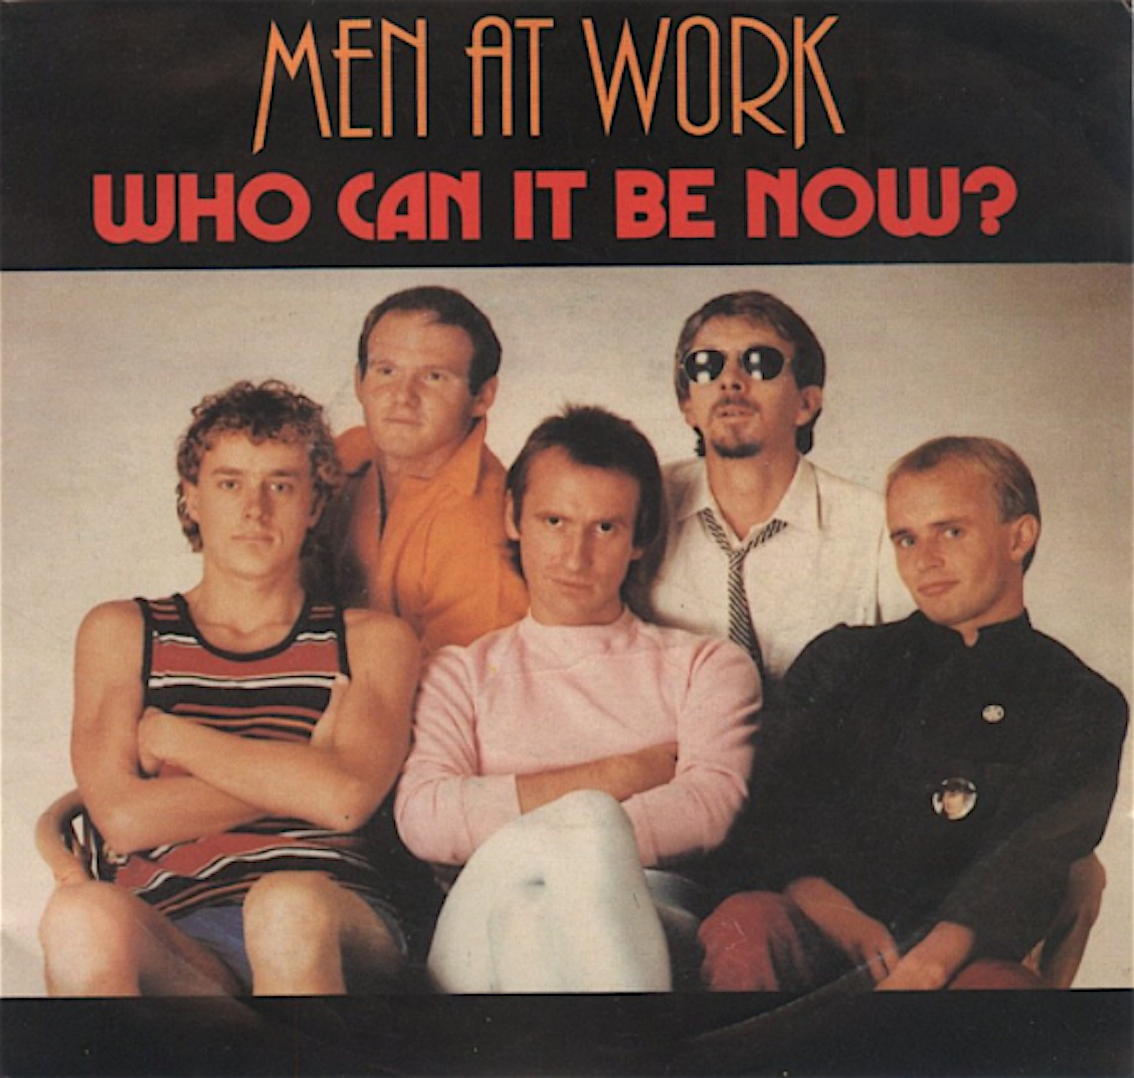 Men_at_work_who_can_it_be_now_copertina_video